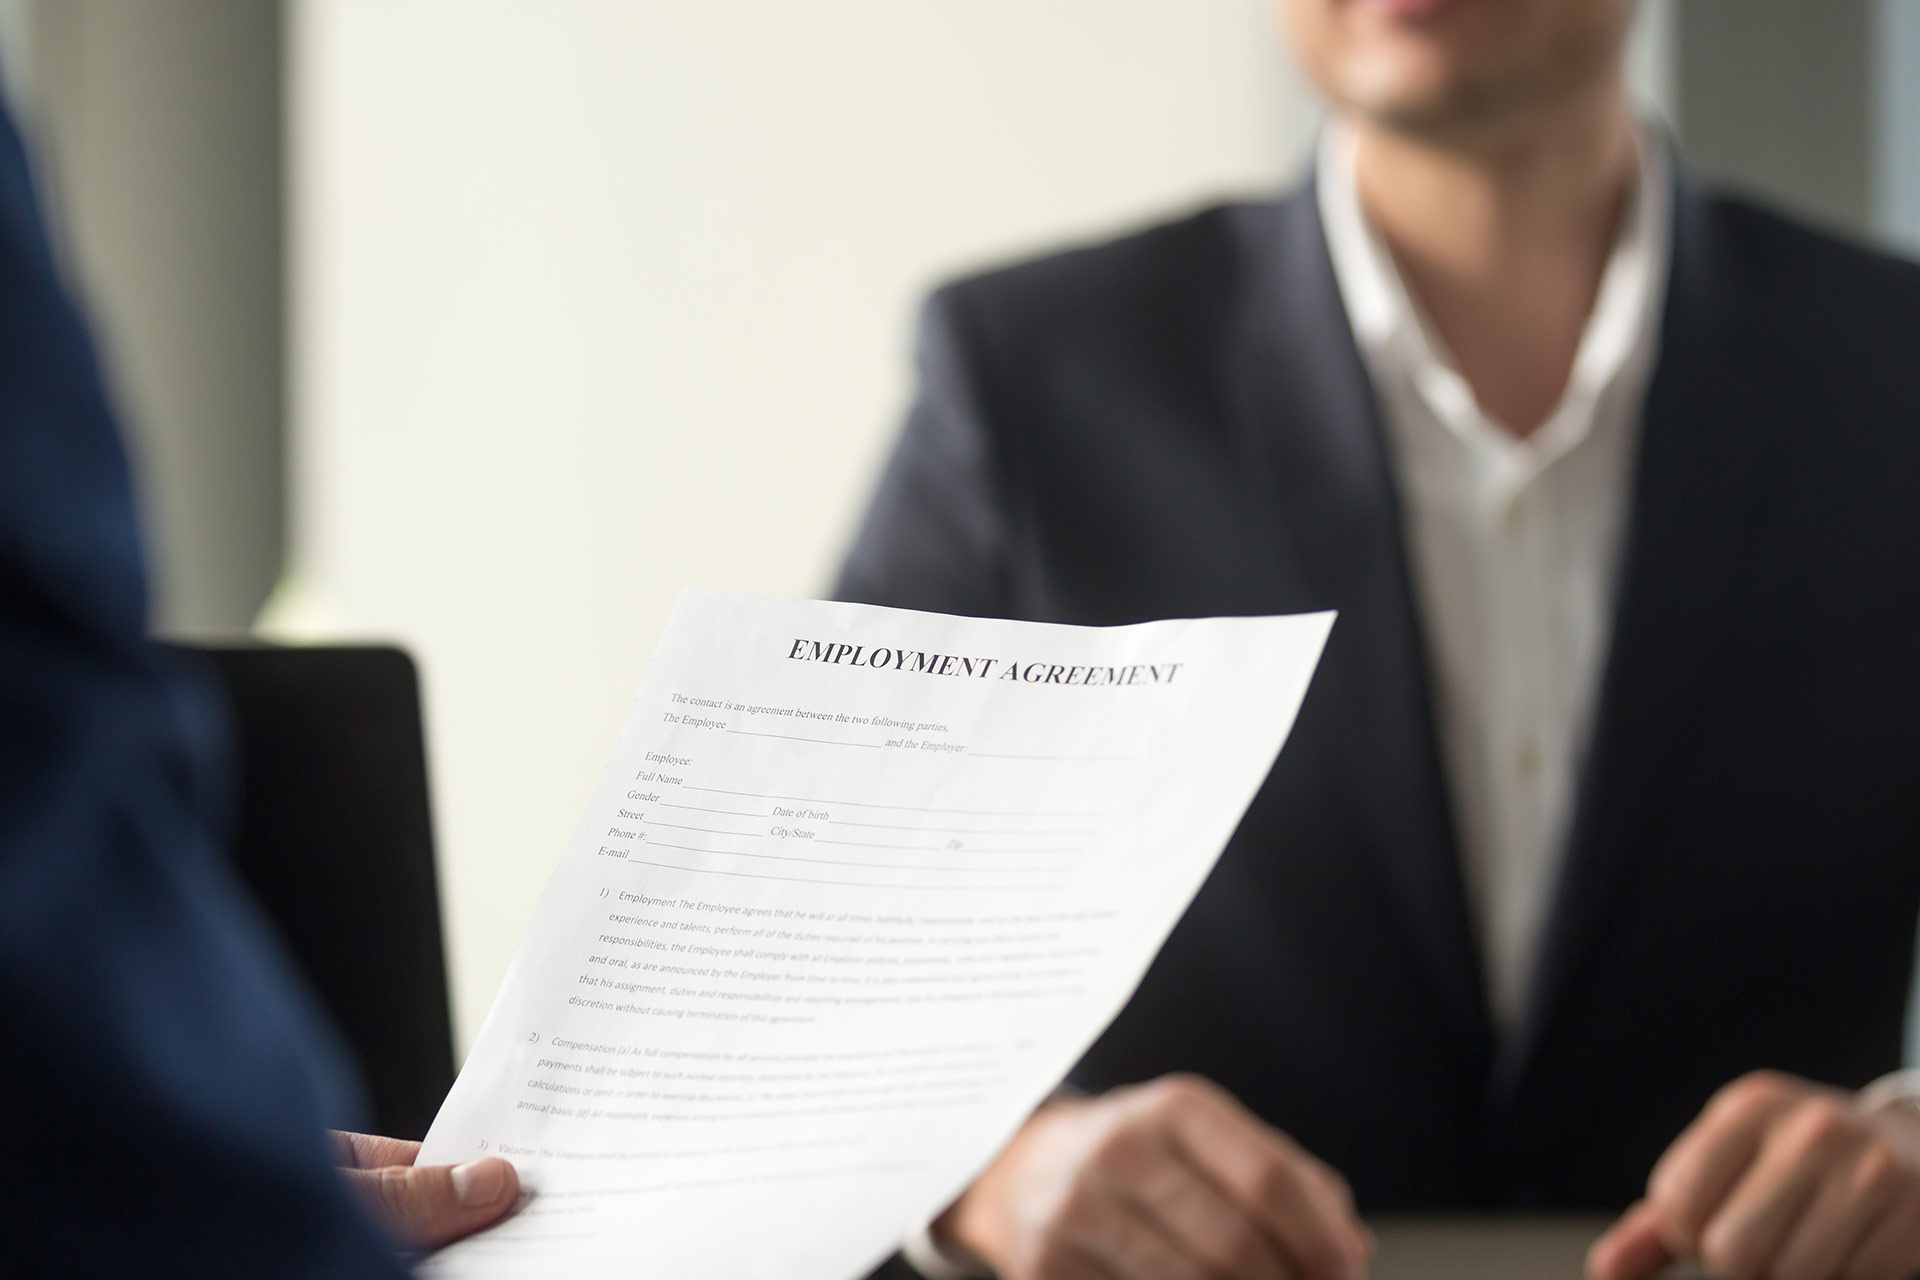 Applicant holding employment agreement in office interview setting.